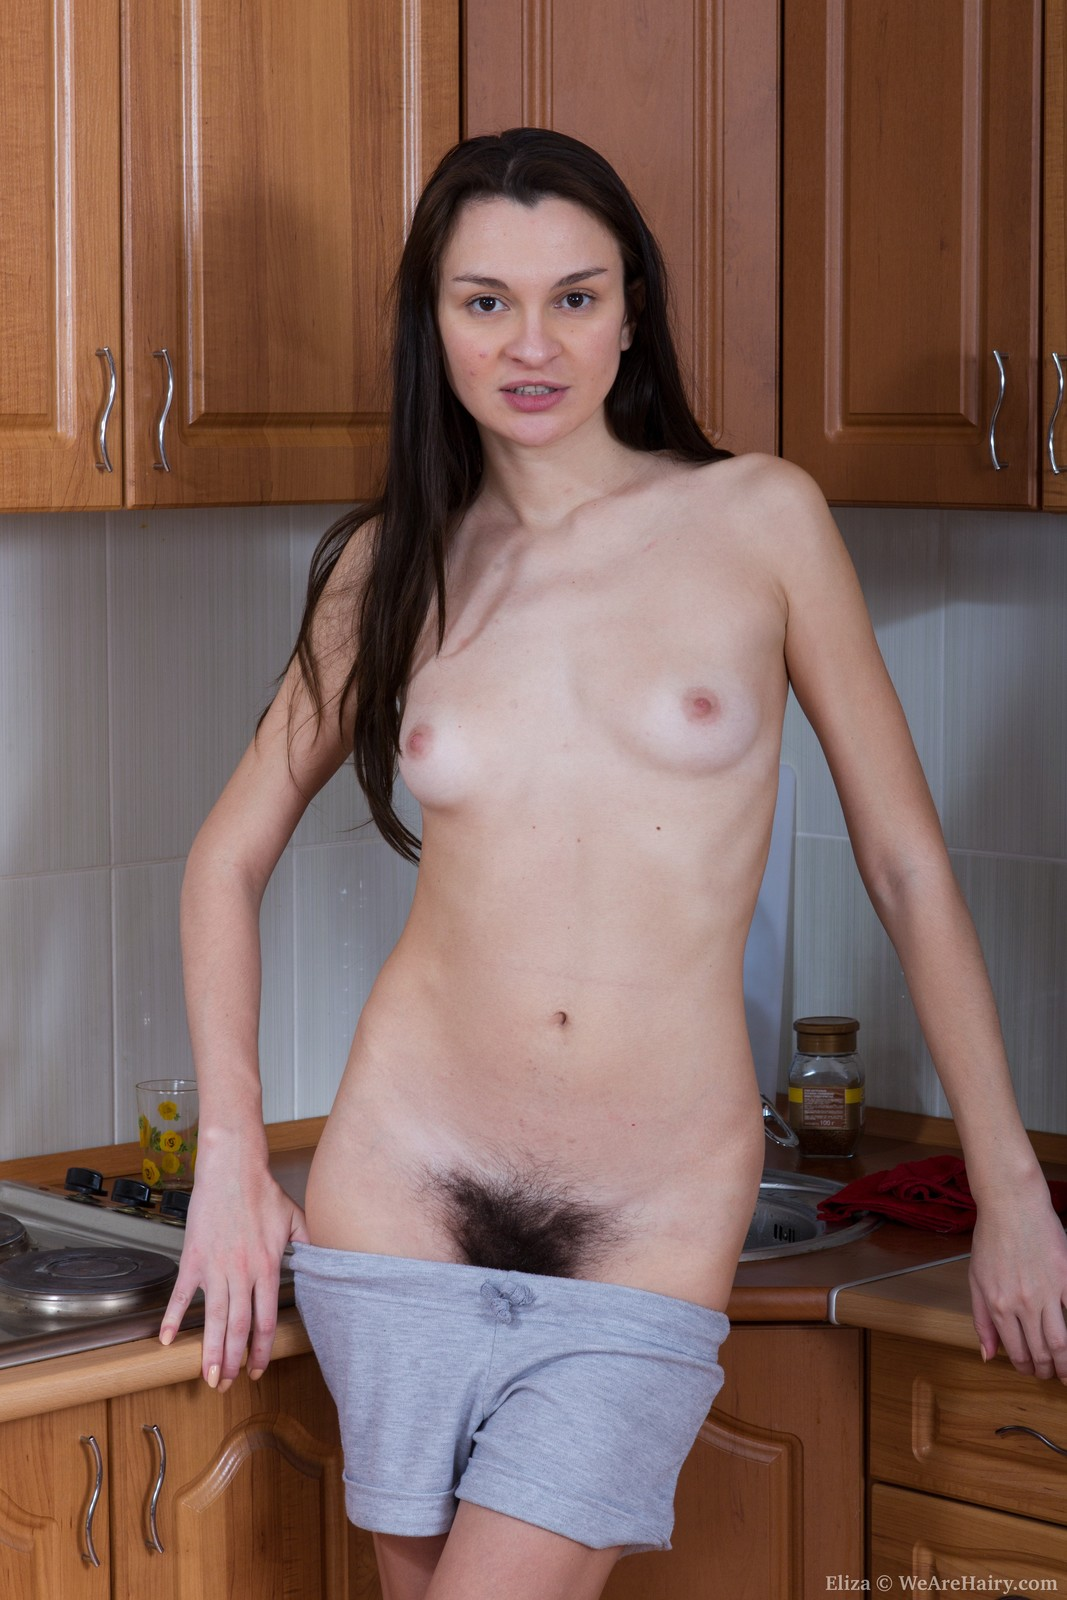 wearehairy.com-eliza mia nude We Are Hairy Eliza Eliza loves her hairy pussy in the kitchen Eliza loves  her hairy pussy and where ever she is, she will caress and pet it.